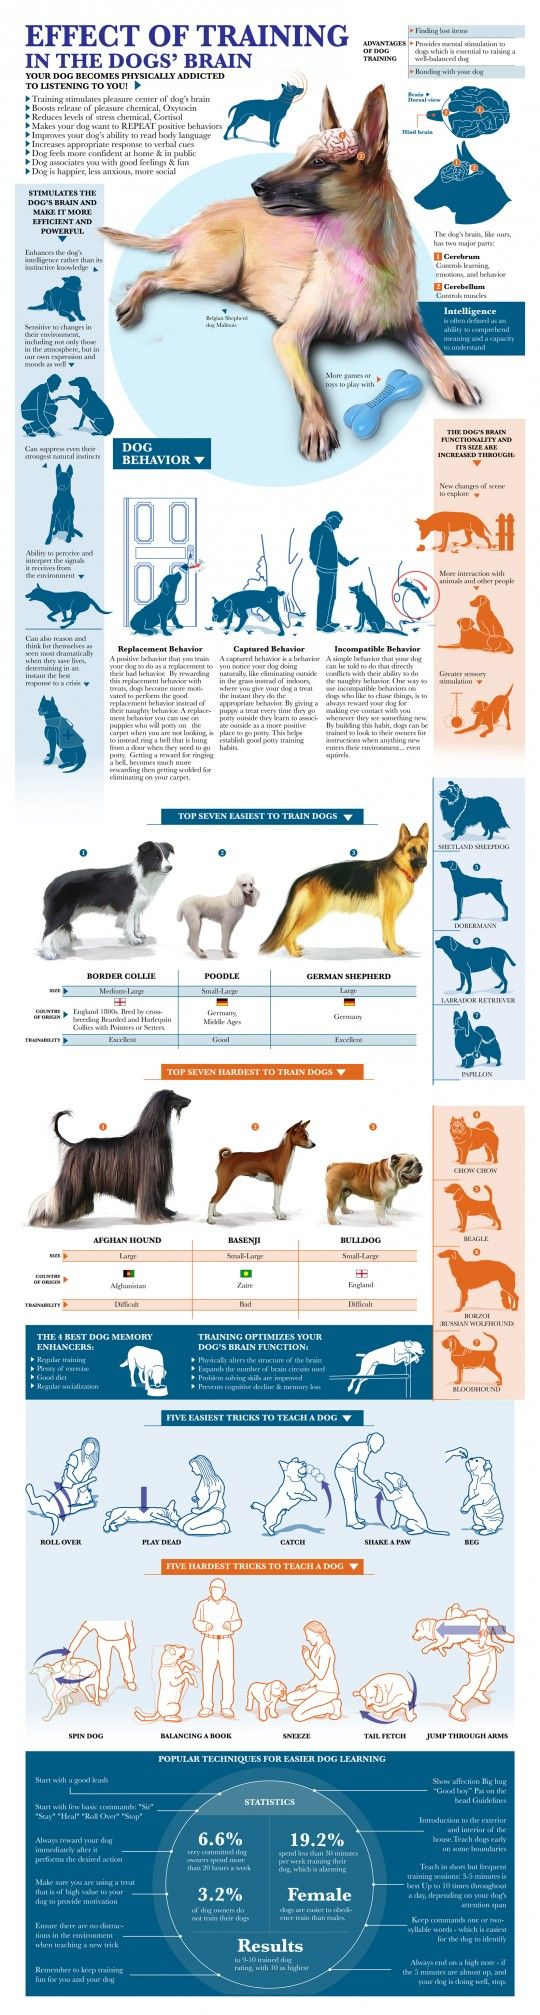 Plum Crazy About Coupons ~ Effects of Training in a Dogs Brain. Very informative infographic. Do you train your dog and was it easy?